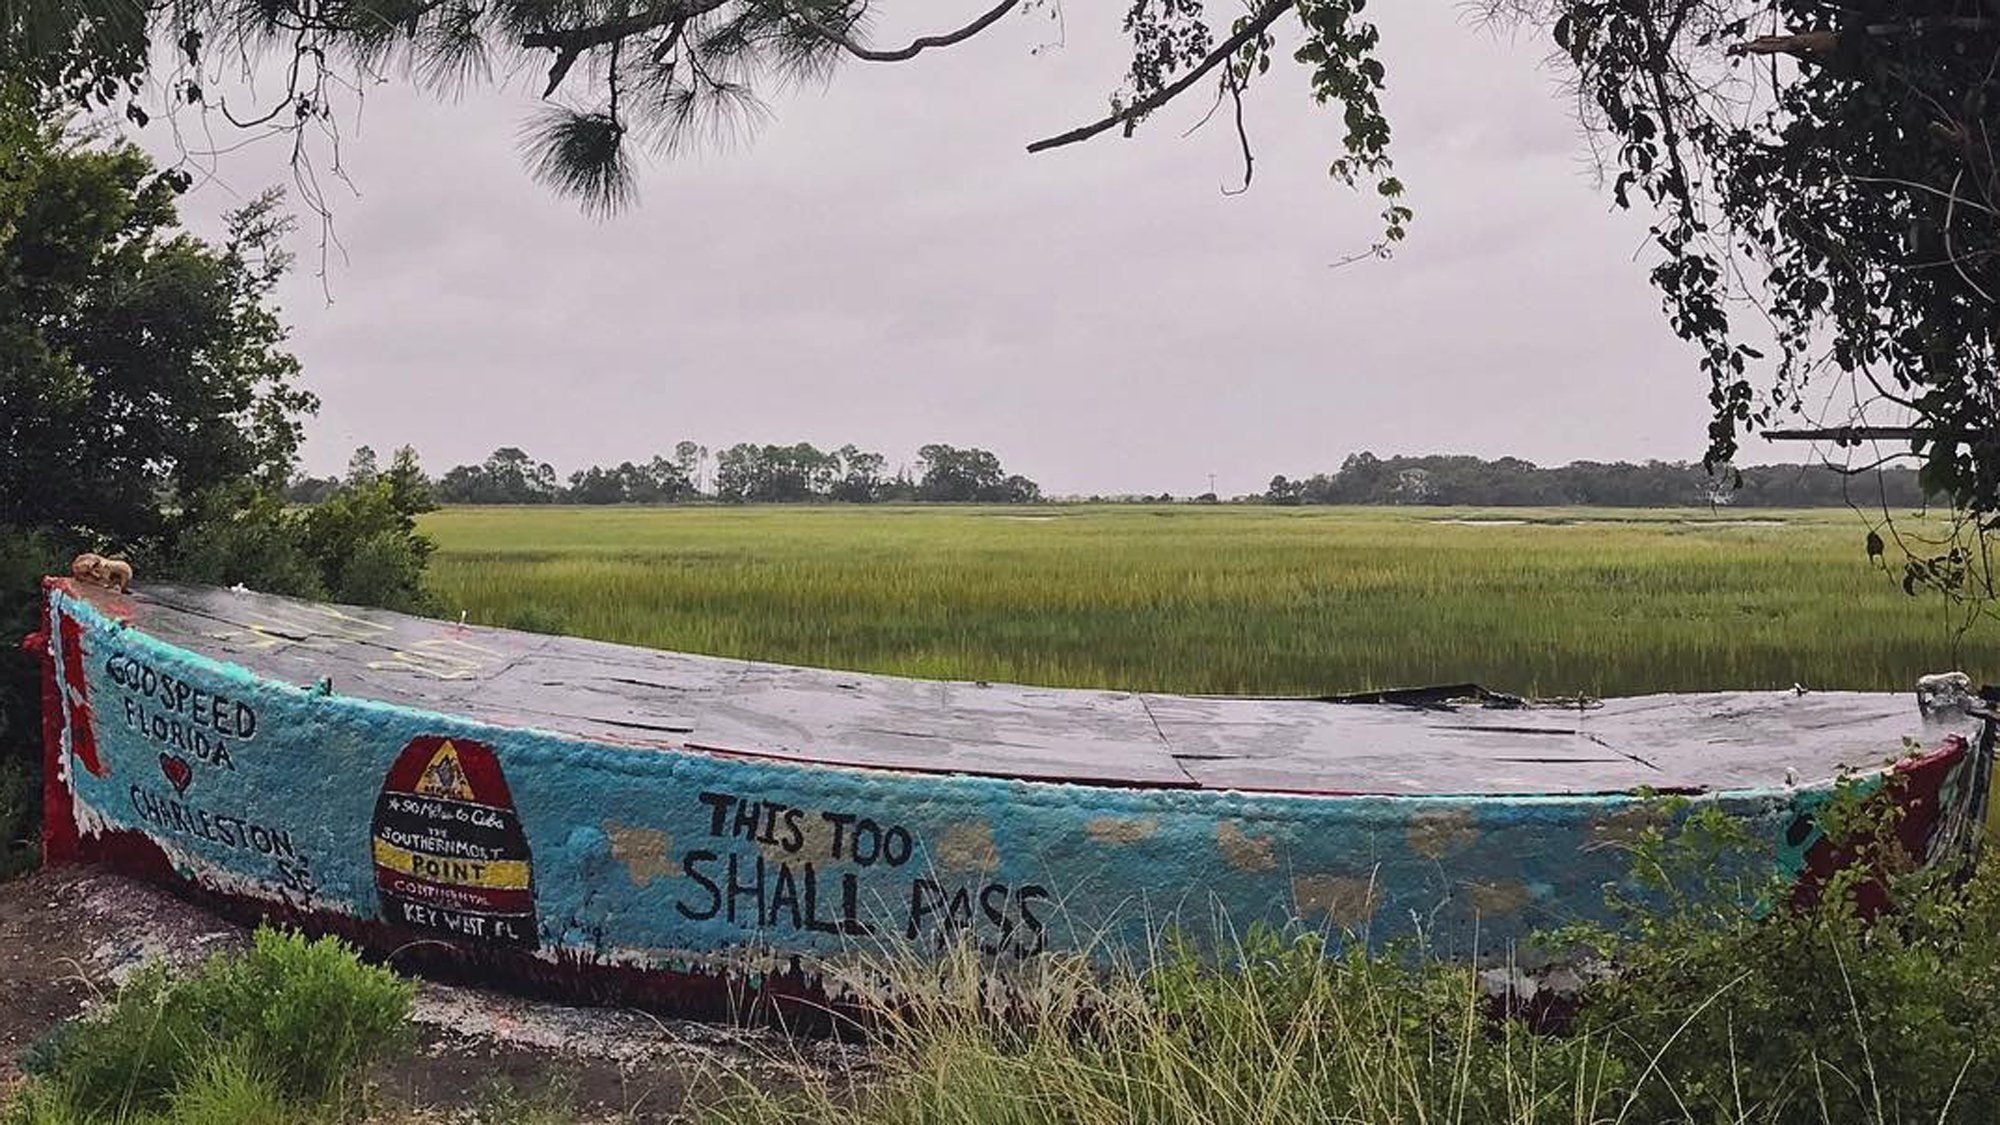 Stephanie Lee took this photo of the famous Folly Boat that was a landmark on the road to Folly Beach. The boat is often painted with messages and pictures. Lee took this photo on Sunday night. (CNN)